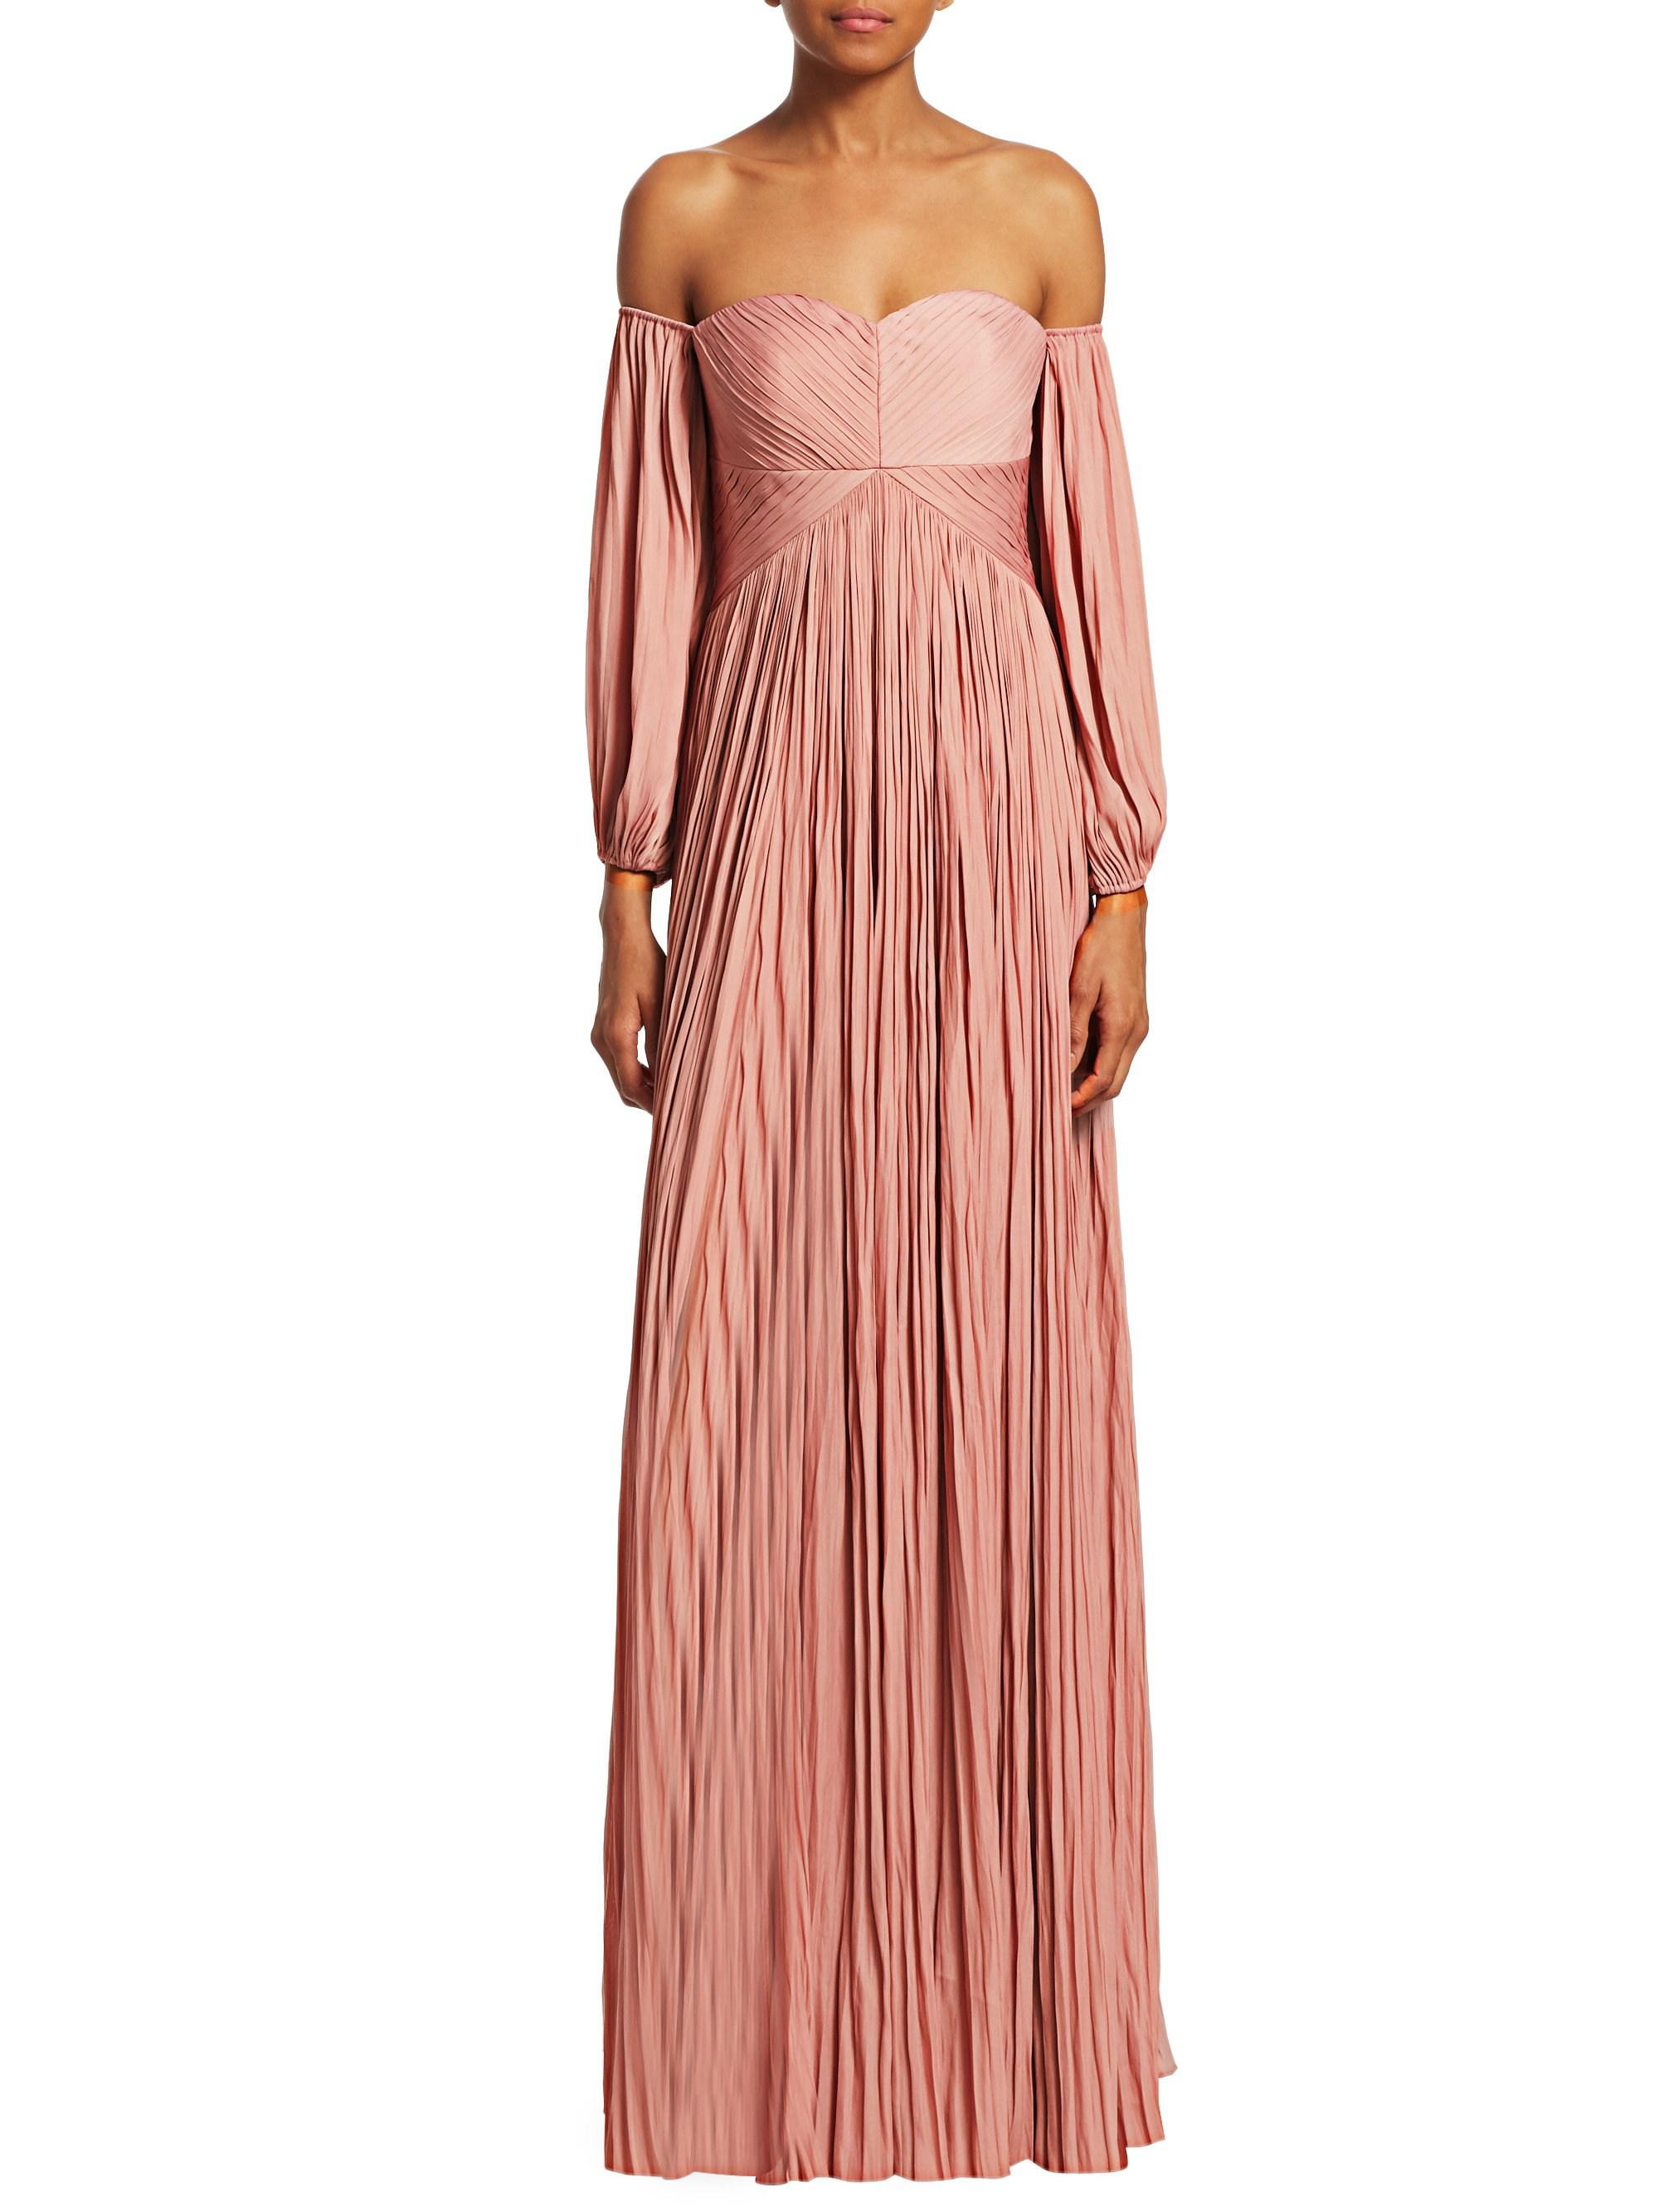 Halston Heritage Pleated Off-the-shoulder Evening Gown in Pink - Lyst